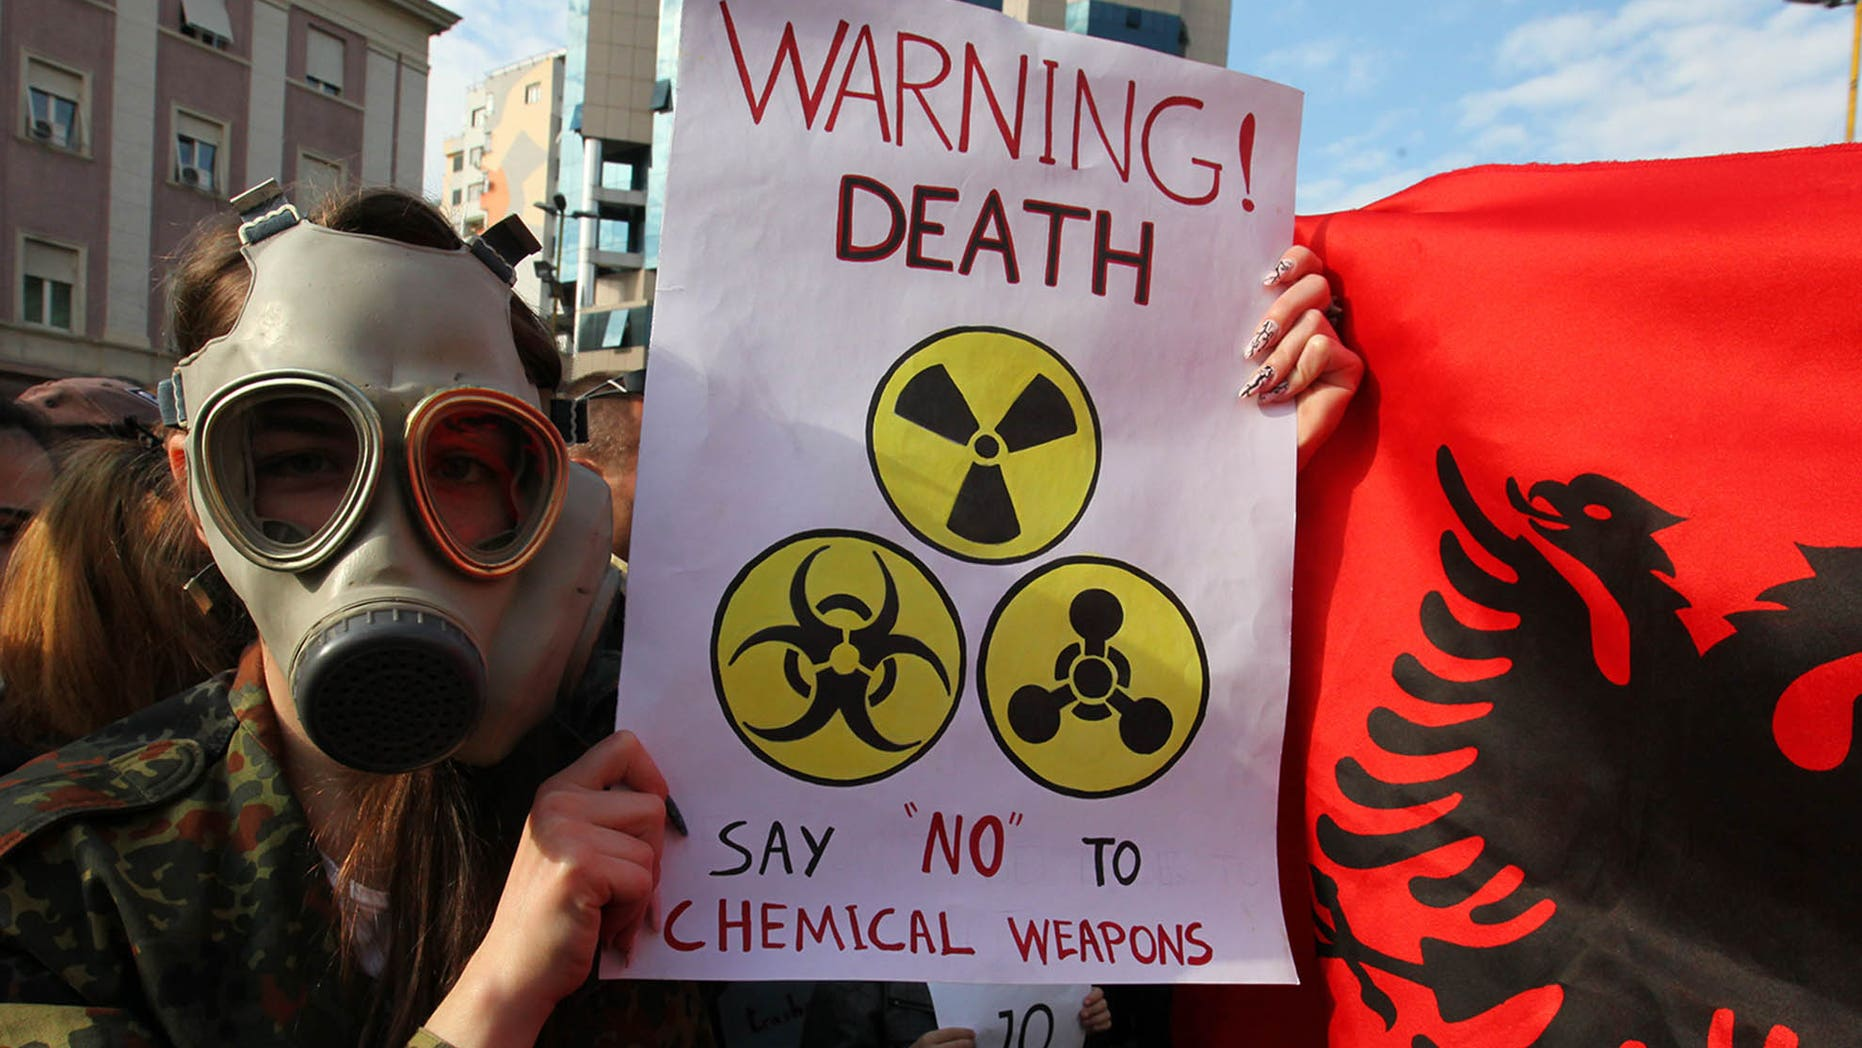 Nov. 14, 2013 - An Albanian student wears a gas mask and holds a sign  during a protest against the dismantling of Syrian chemical weapons in Albania at the Prime Minister's office in Tirana.